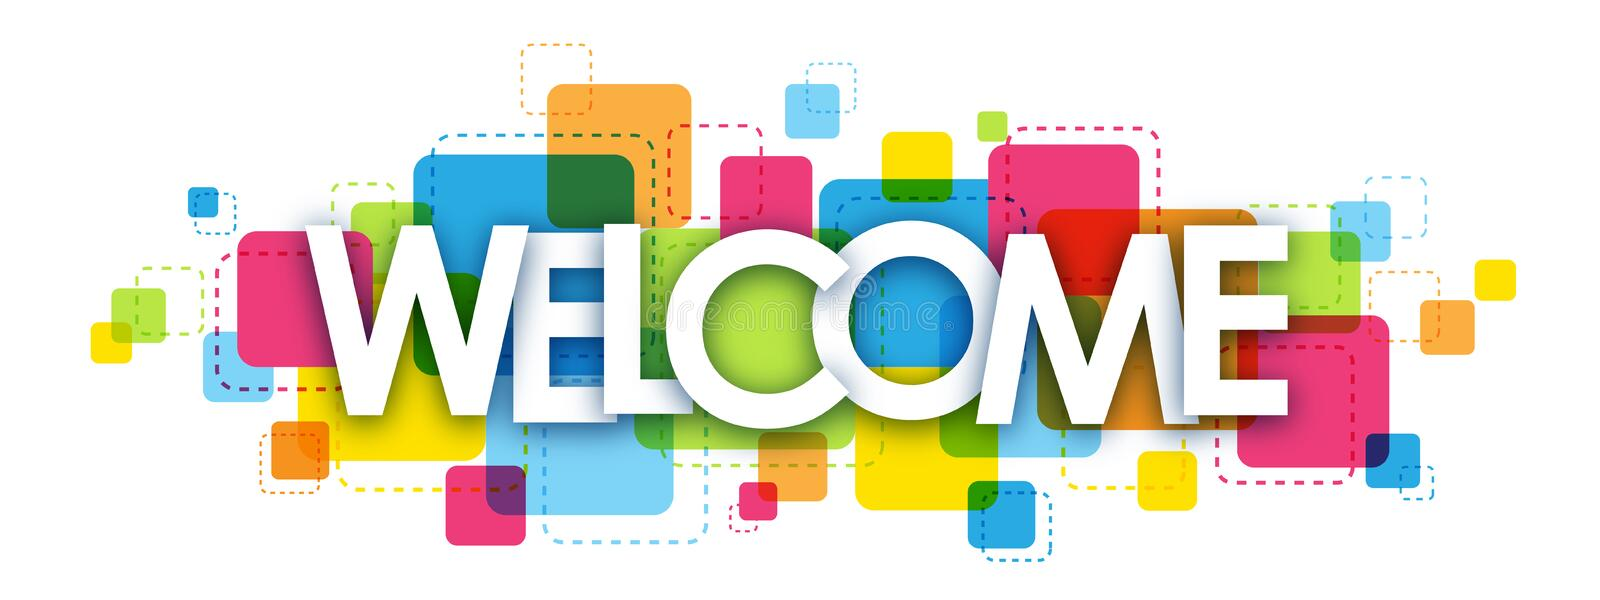 WELCOME letters banner royalty free stock images